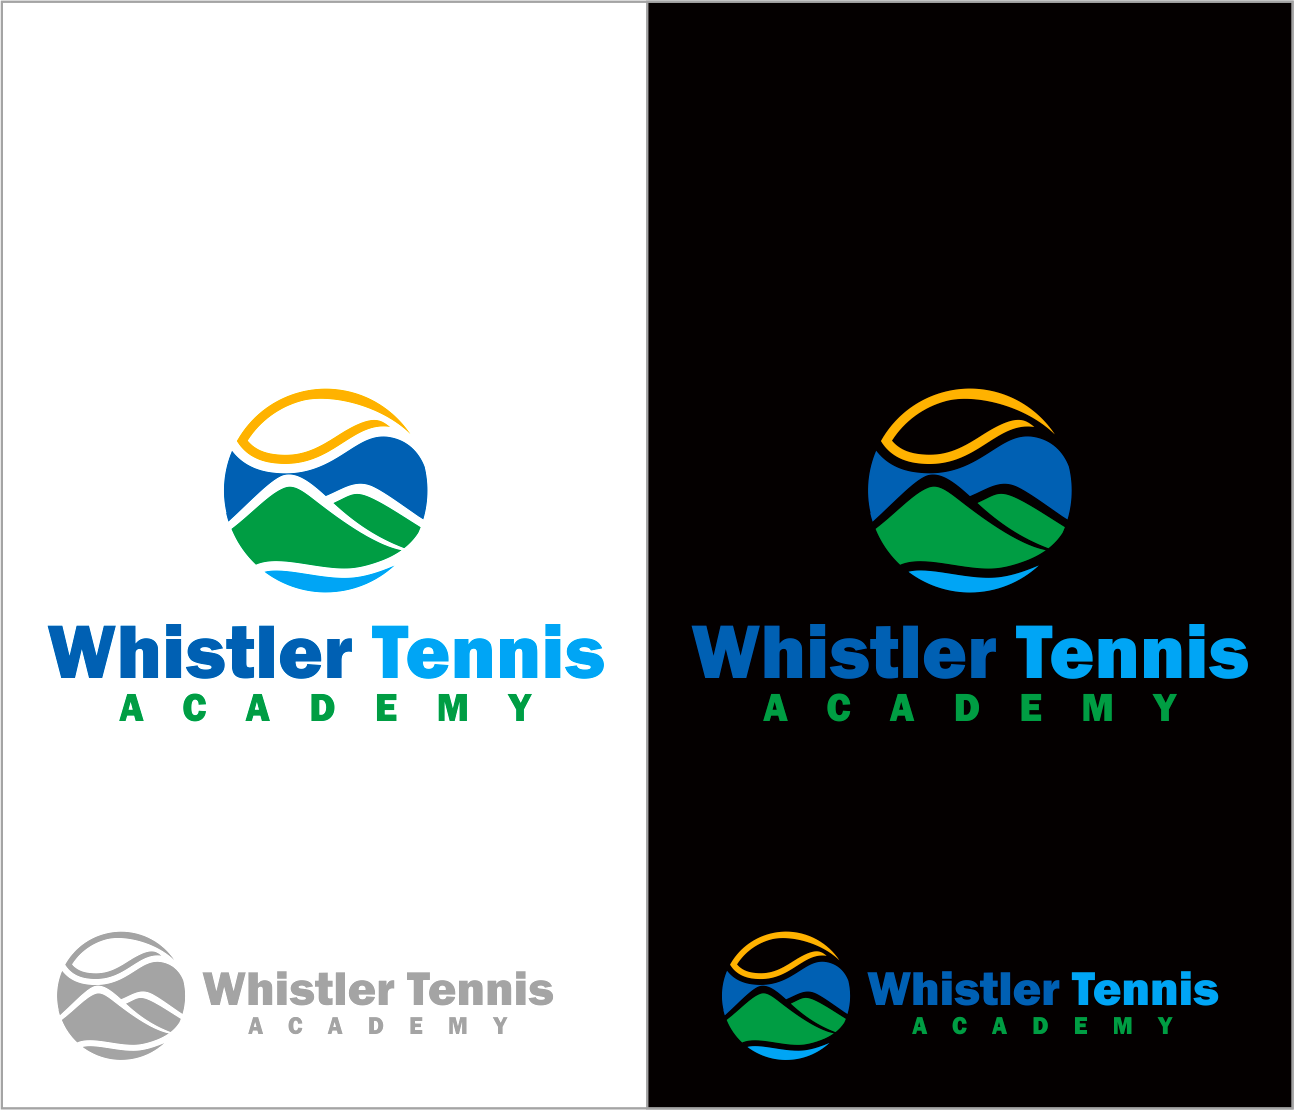 Logo Design by Armada Jamaluddin - Entry No. 238 in the Logo Design Contest Imaginative Logo Design for Whistler Tennis Academy.